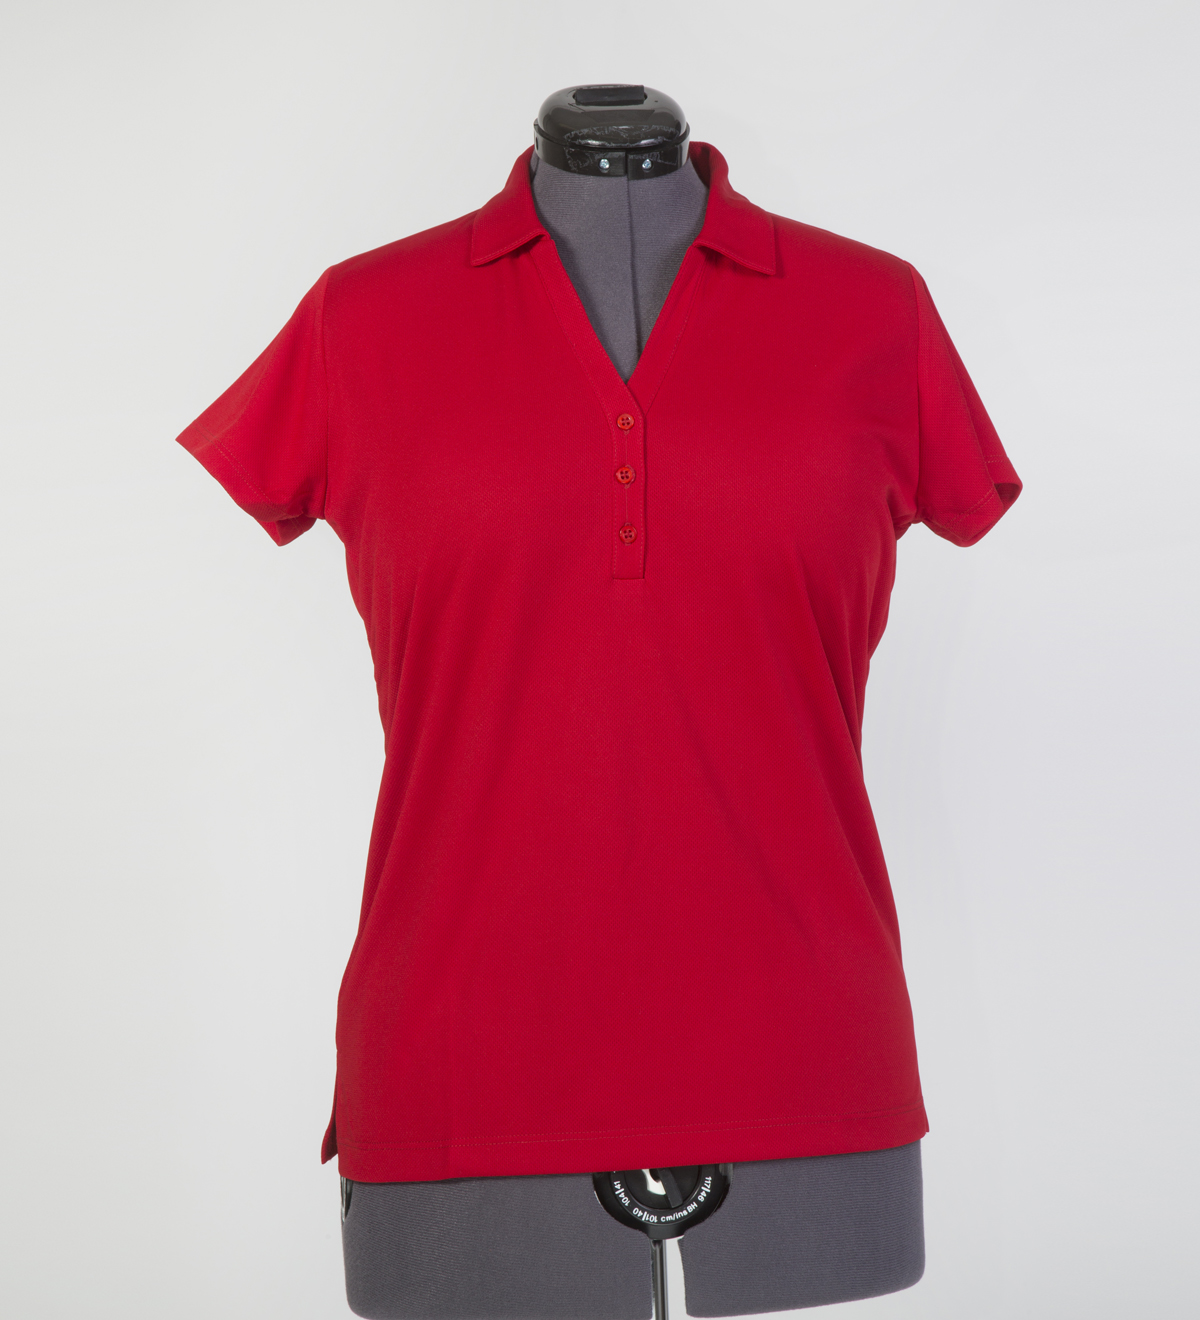 Women s polo dri fit shirts unlimited for Dri fit dress shirts